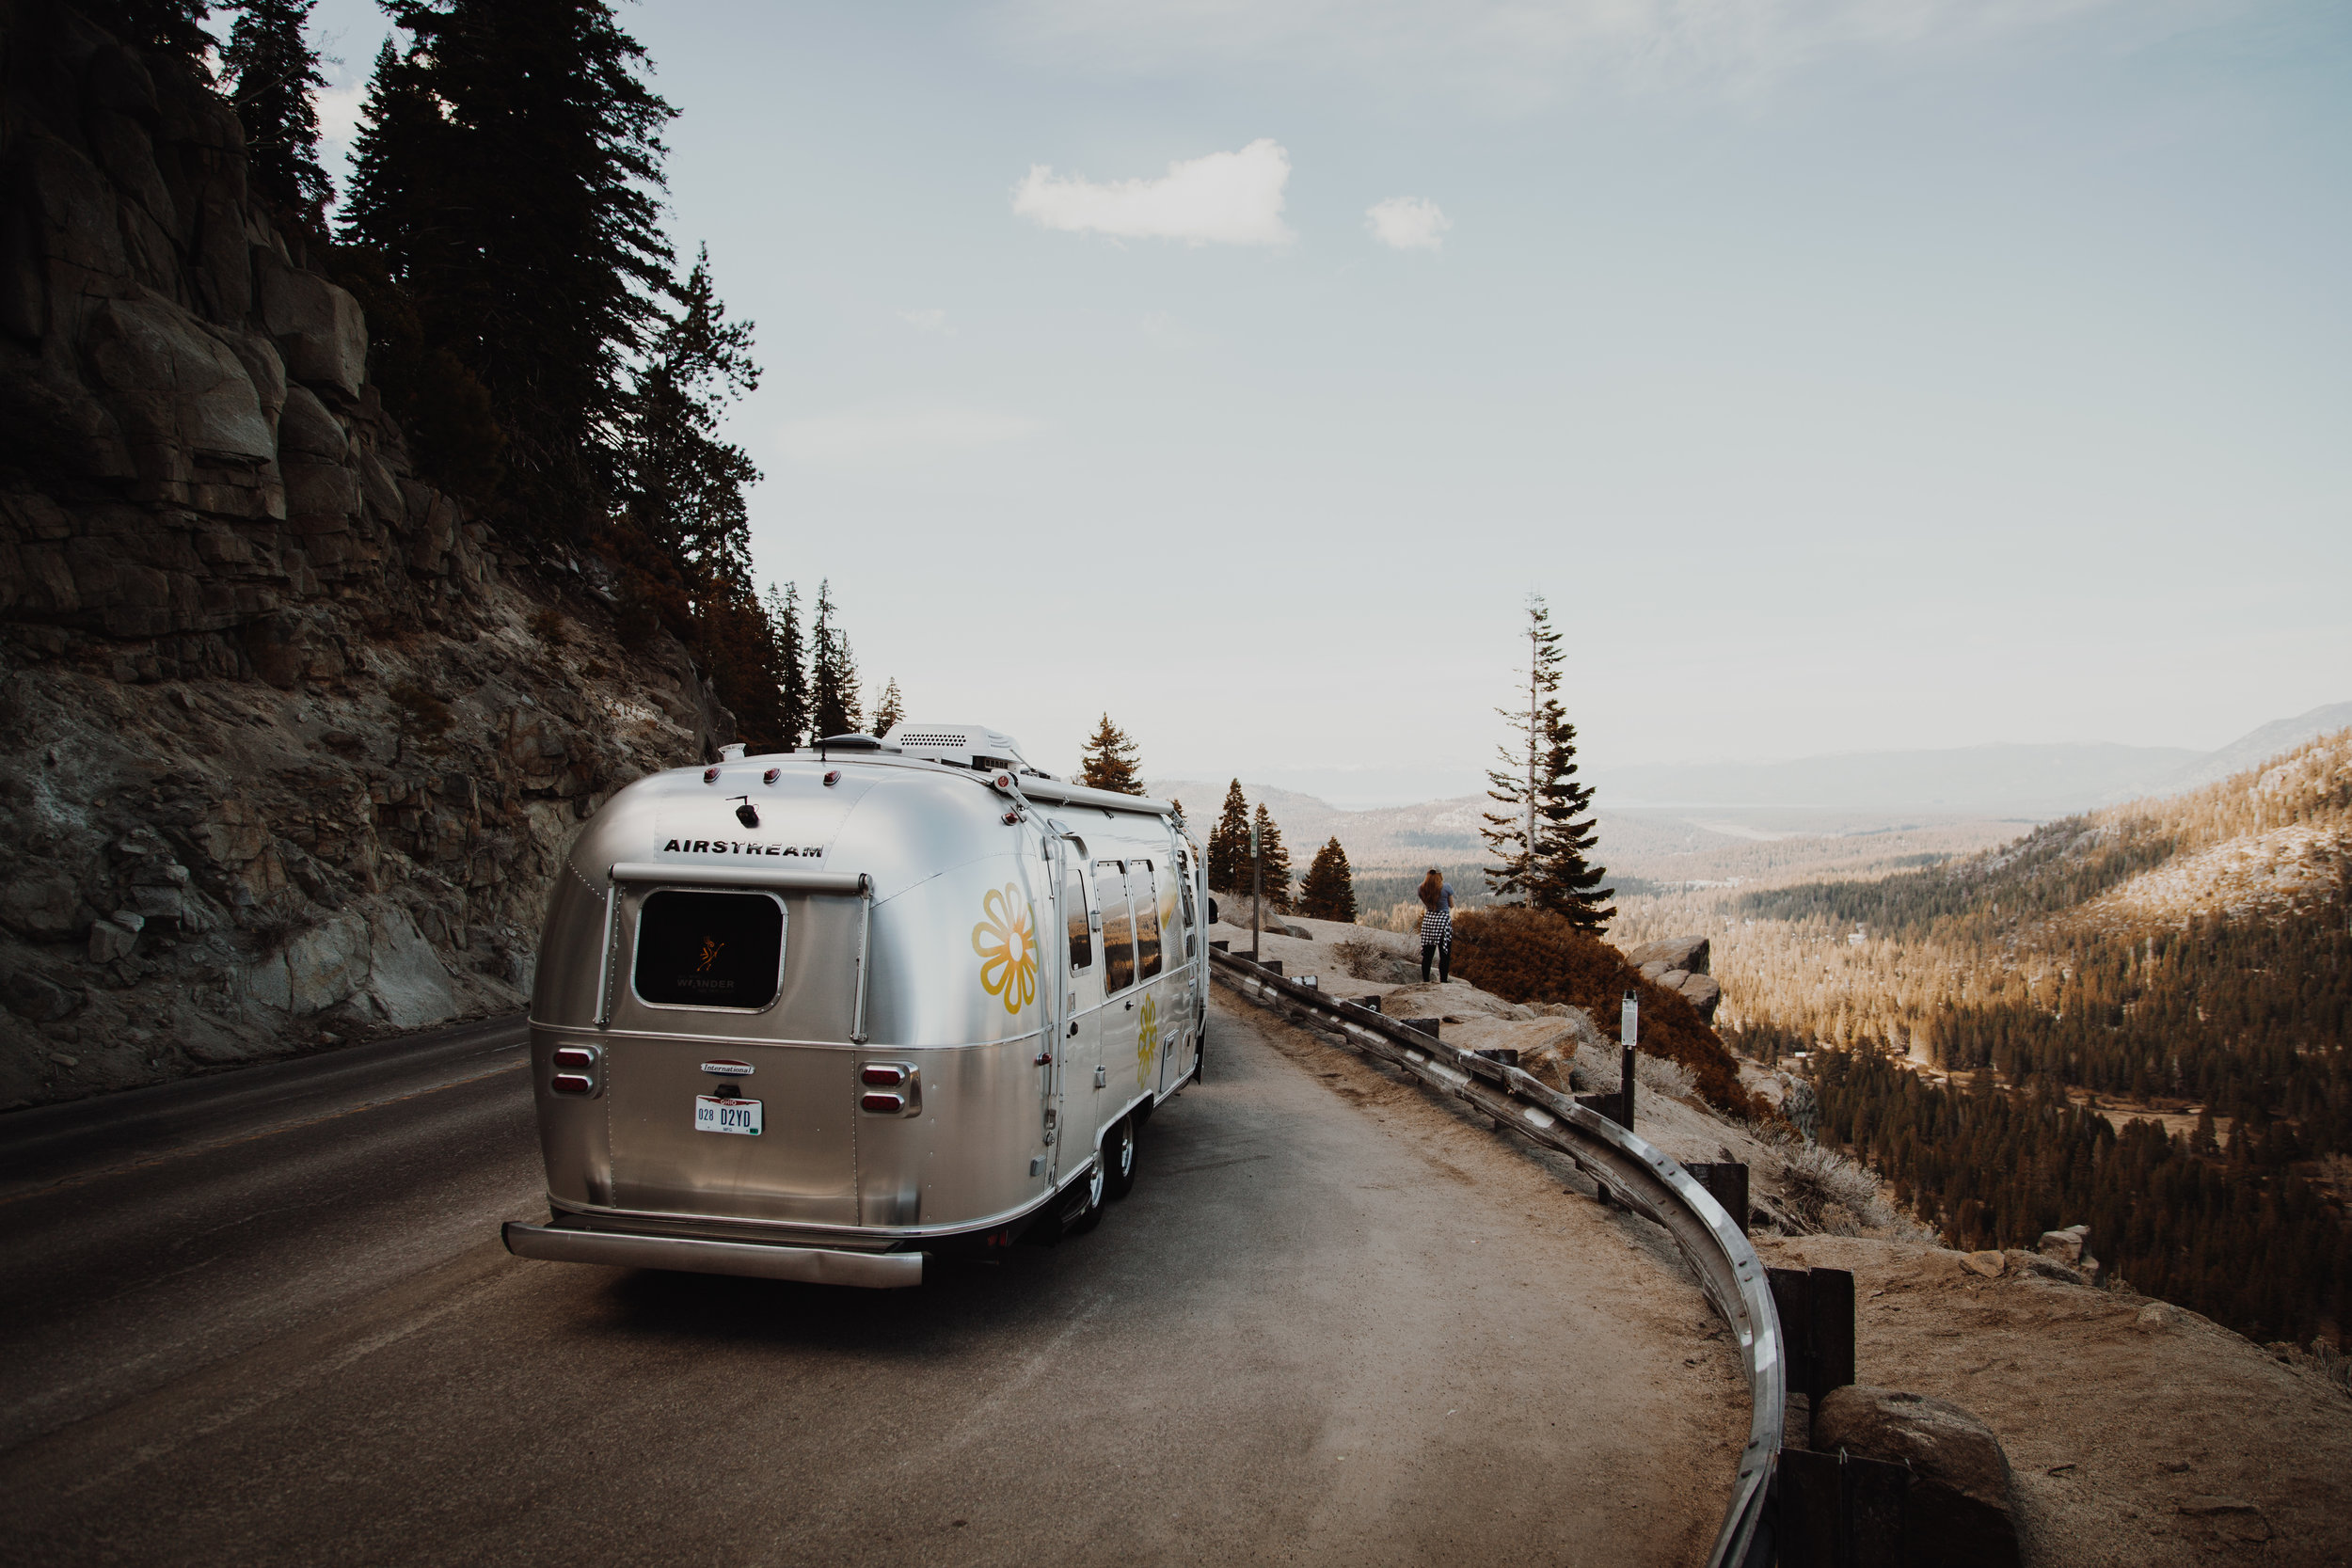 Airstream Inc. x The Yellow Collective - on the road for Yellow Co's West Coast Tour+ Airstream Blog with The Endless Caravanhttps://www.airstream.com/blog/endless-caravan-taking-ownership-of-your-self-care/